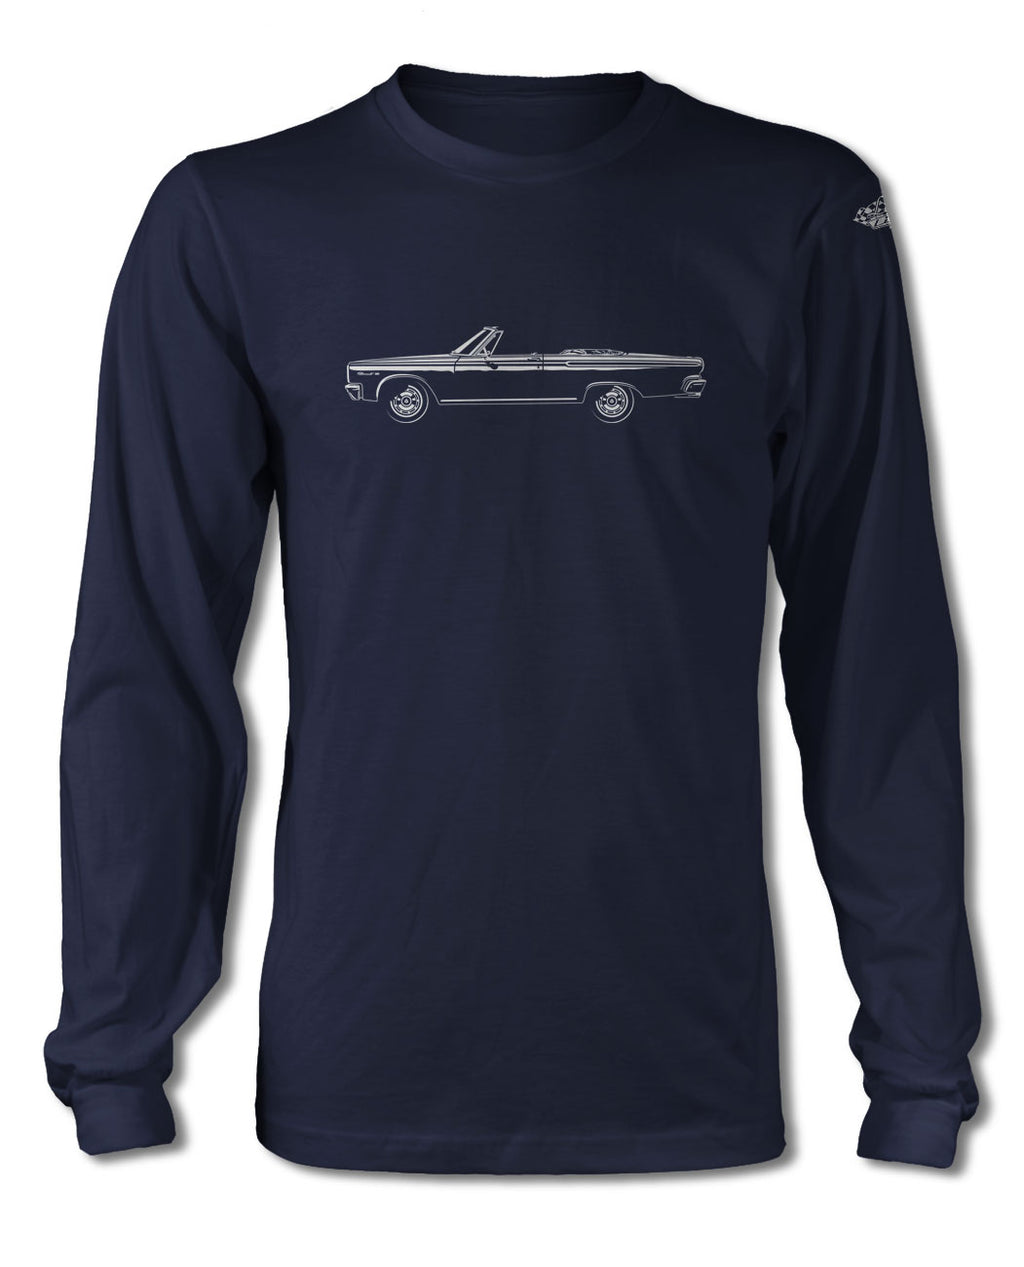 1965 Dodge Coronet 440 Convertible T-Shirt - Long Sleeves - Side View